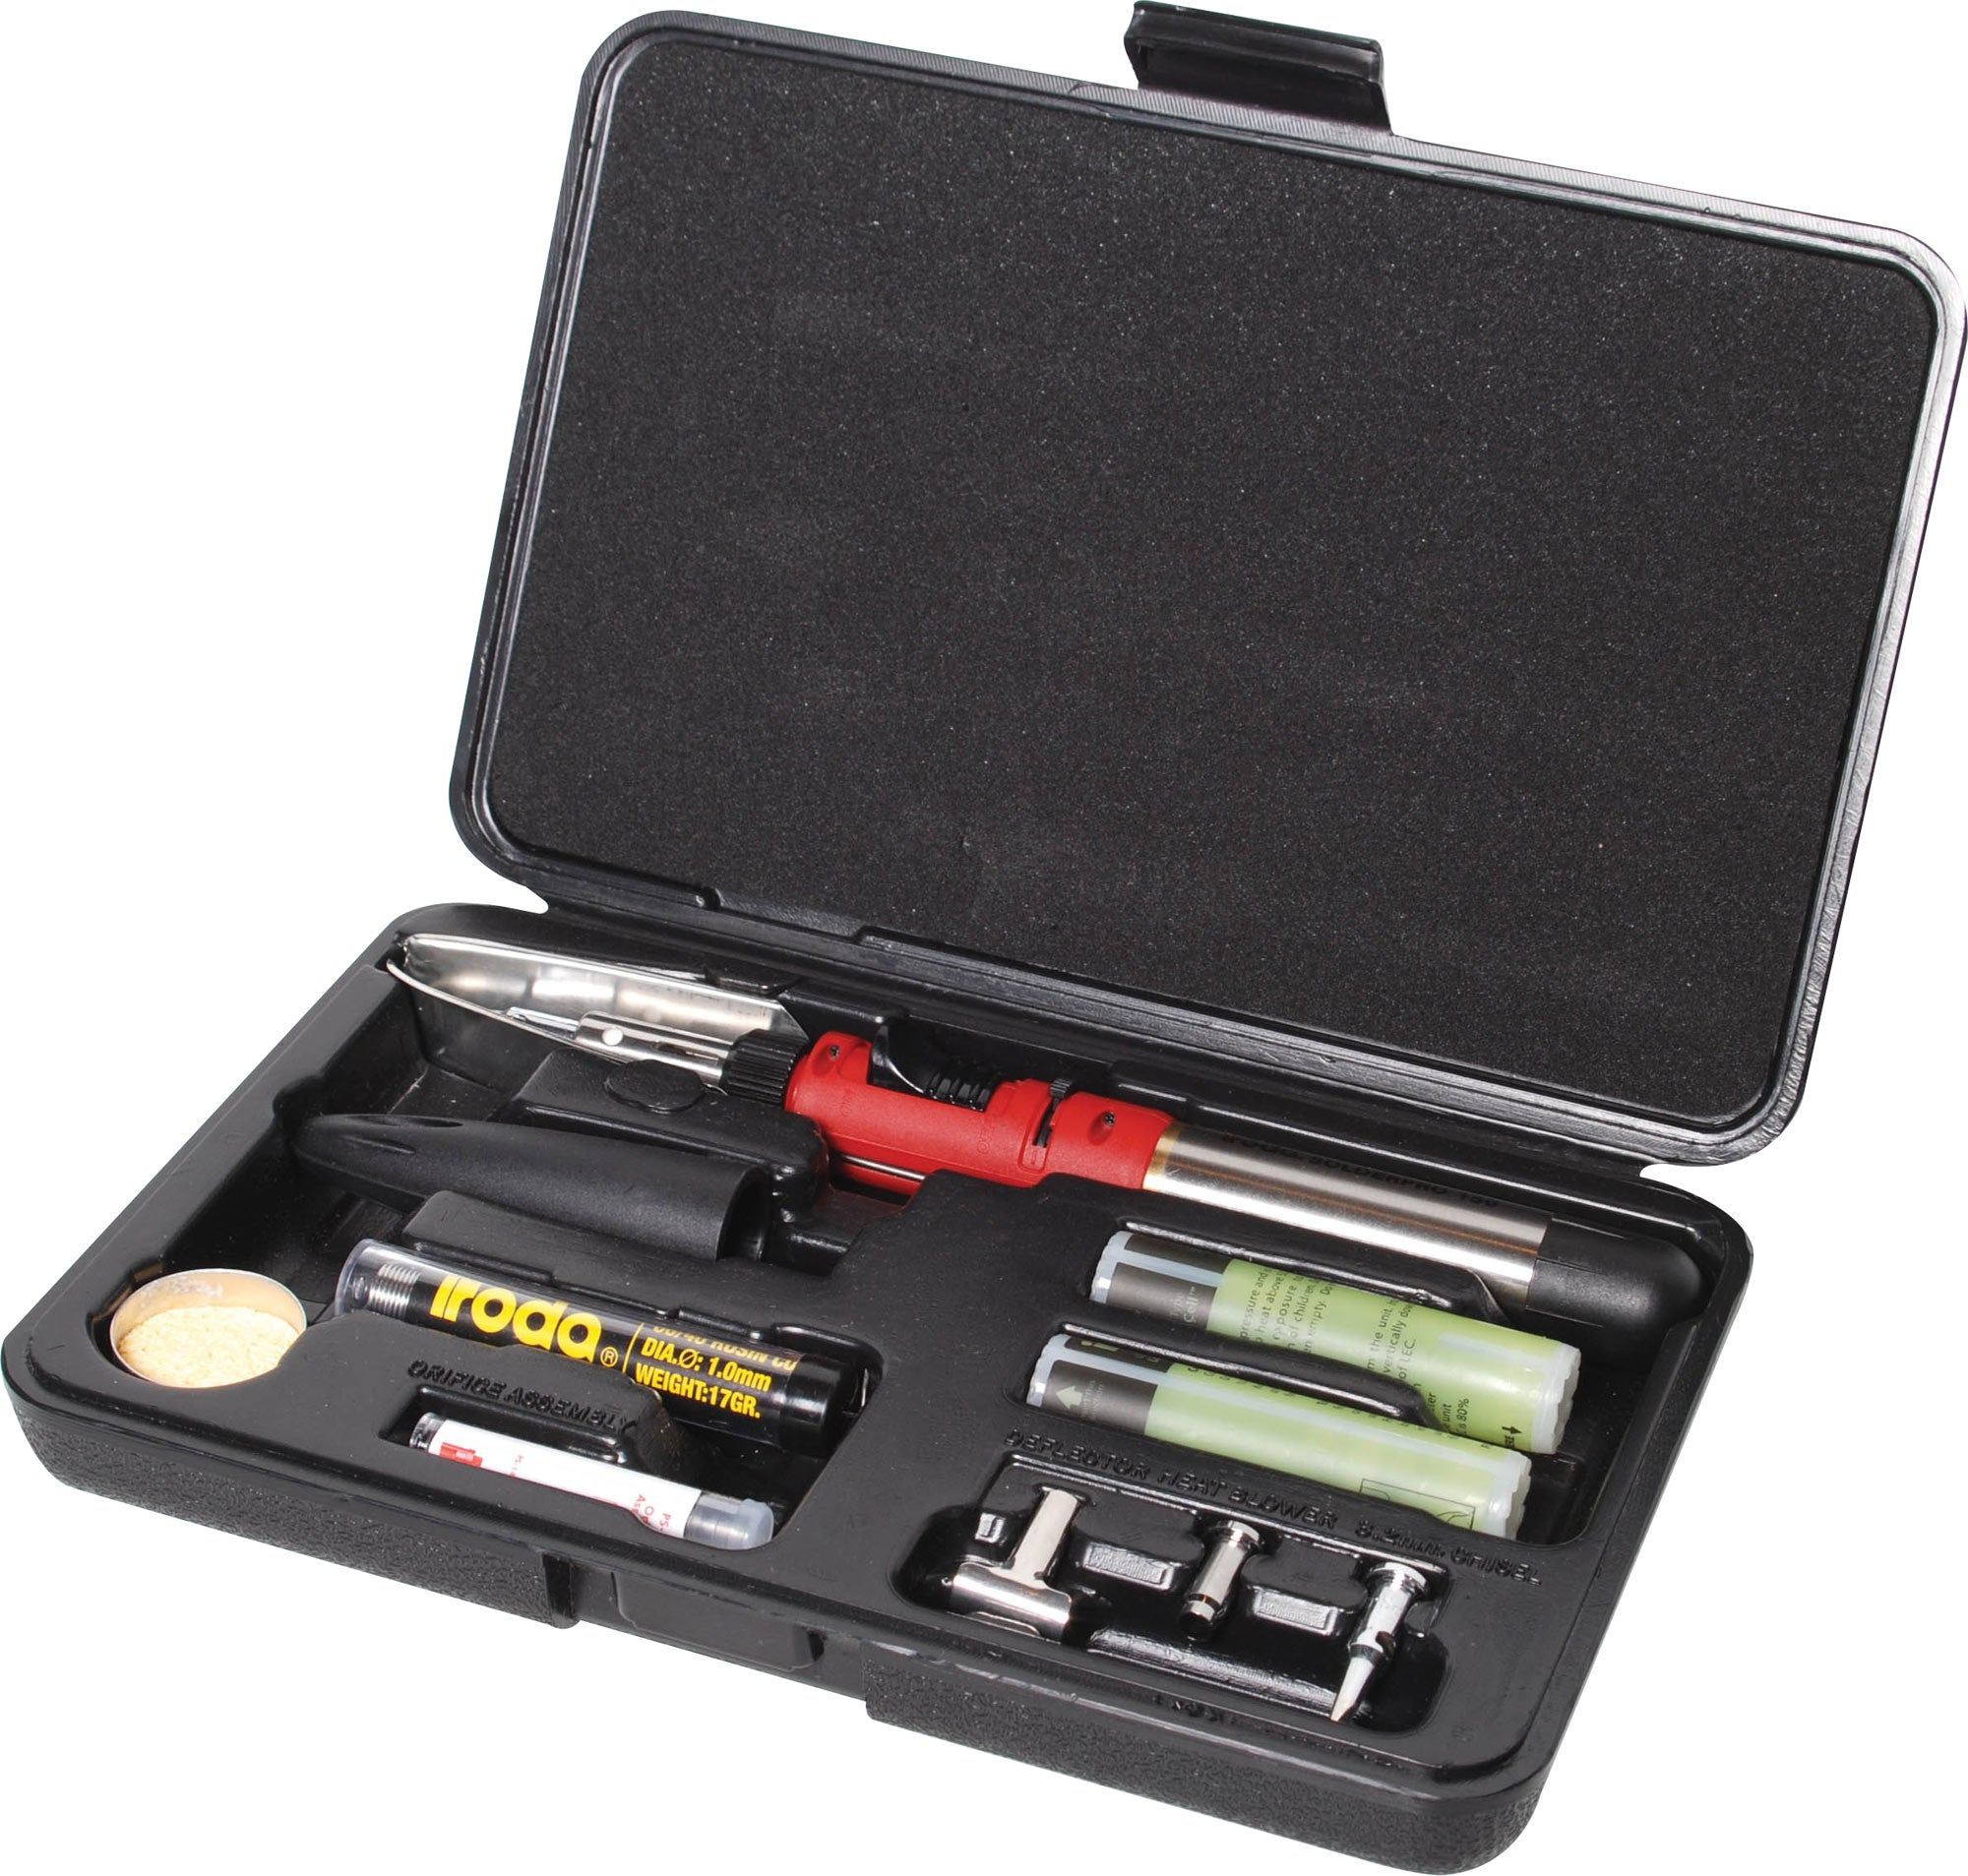 iroda iroda Solderpro 150 125W Gas Soldering Iron Kit - Cartridge Powered - BNR Industrial